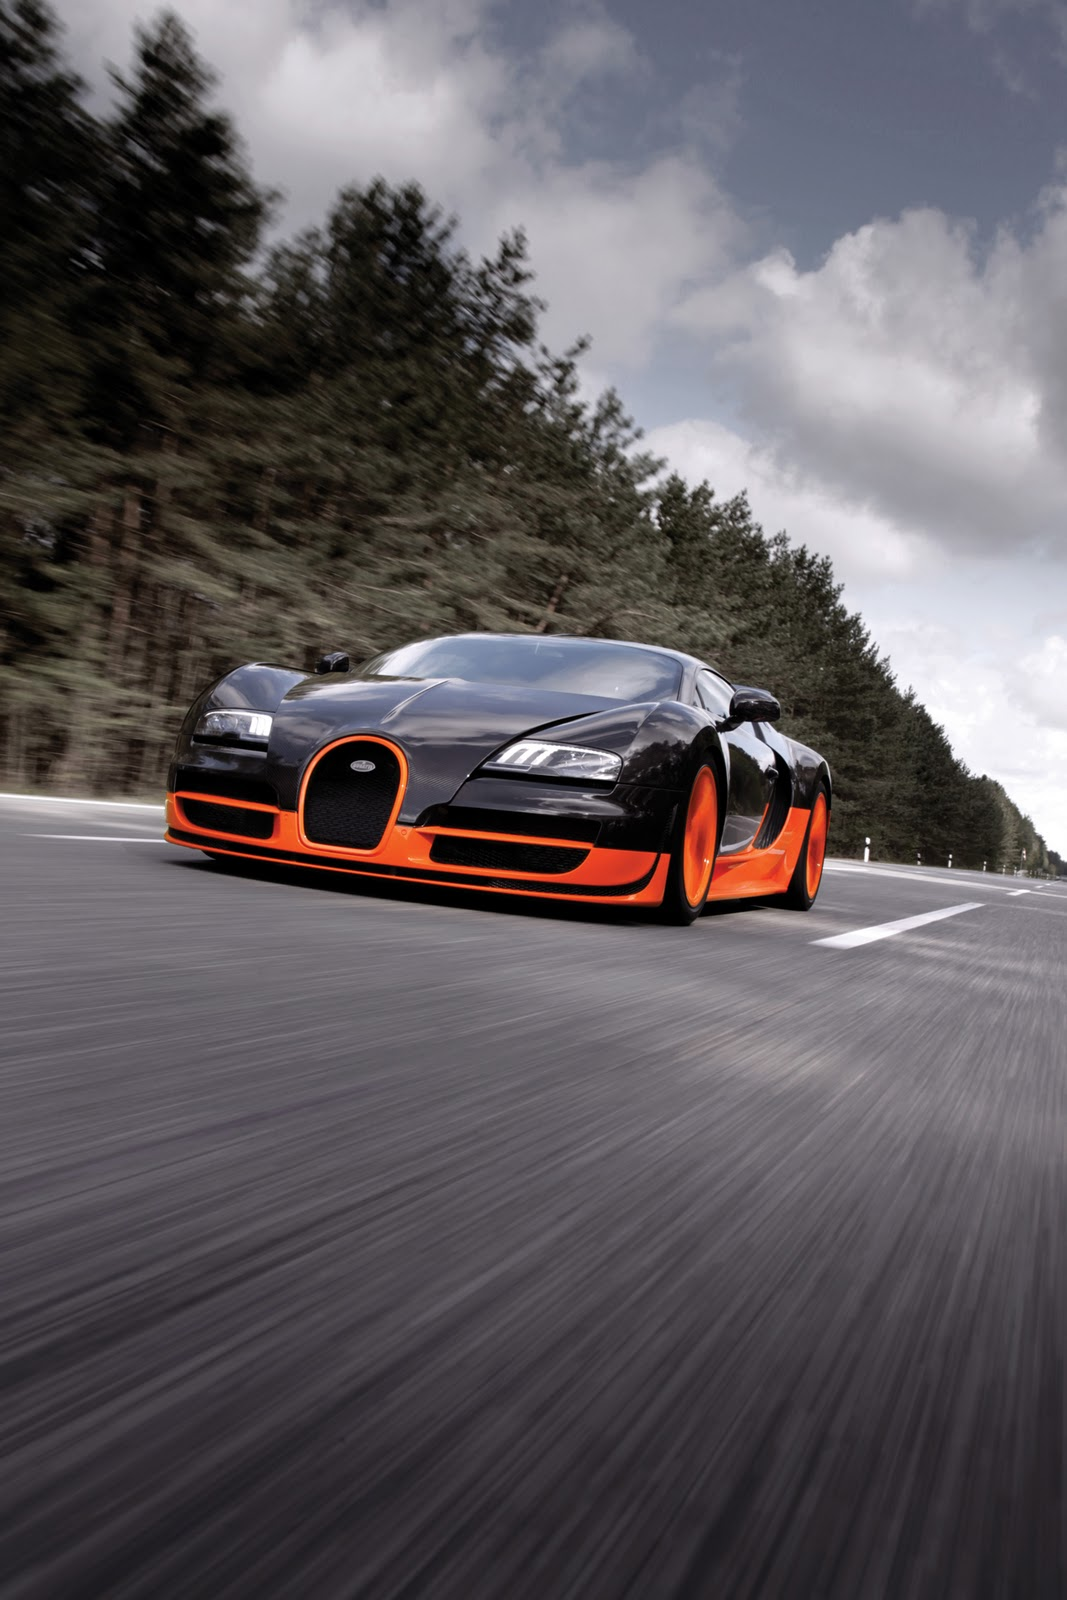 Bugatti Veyron 16 4 Super Sport hits 267 81 mph! | Cool Cars | Car Blog